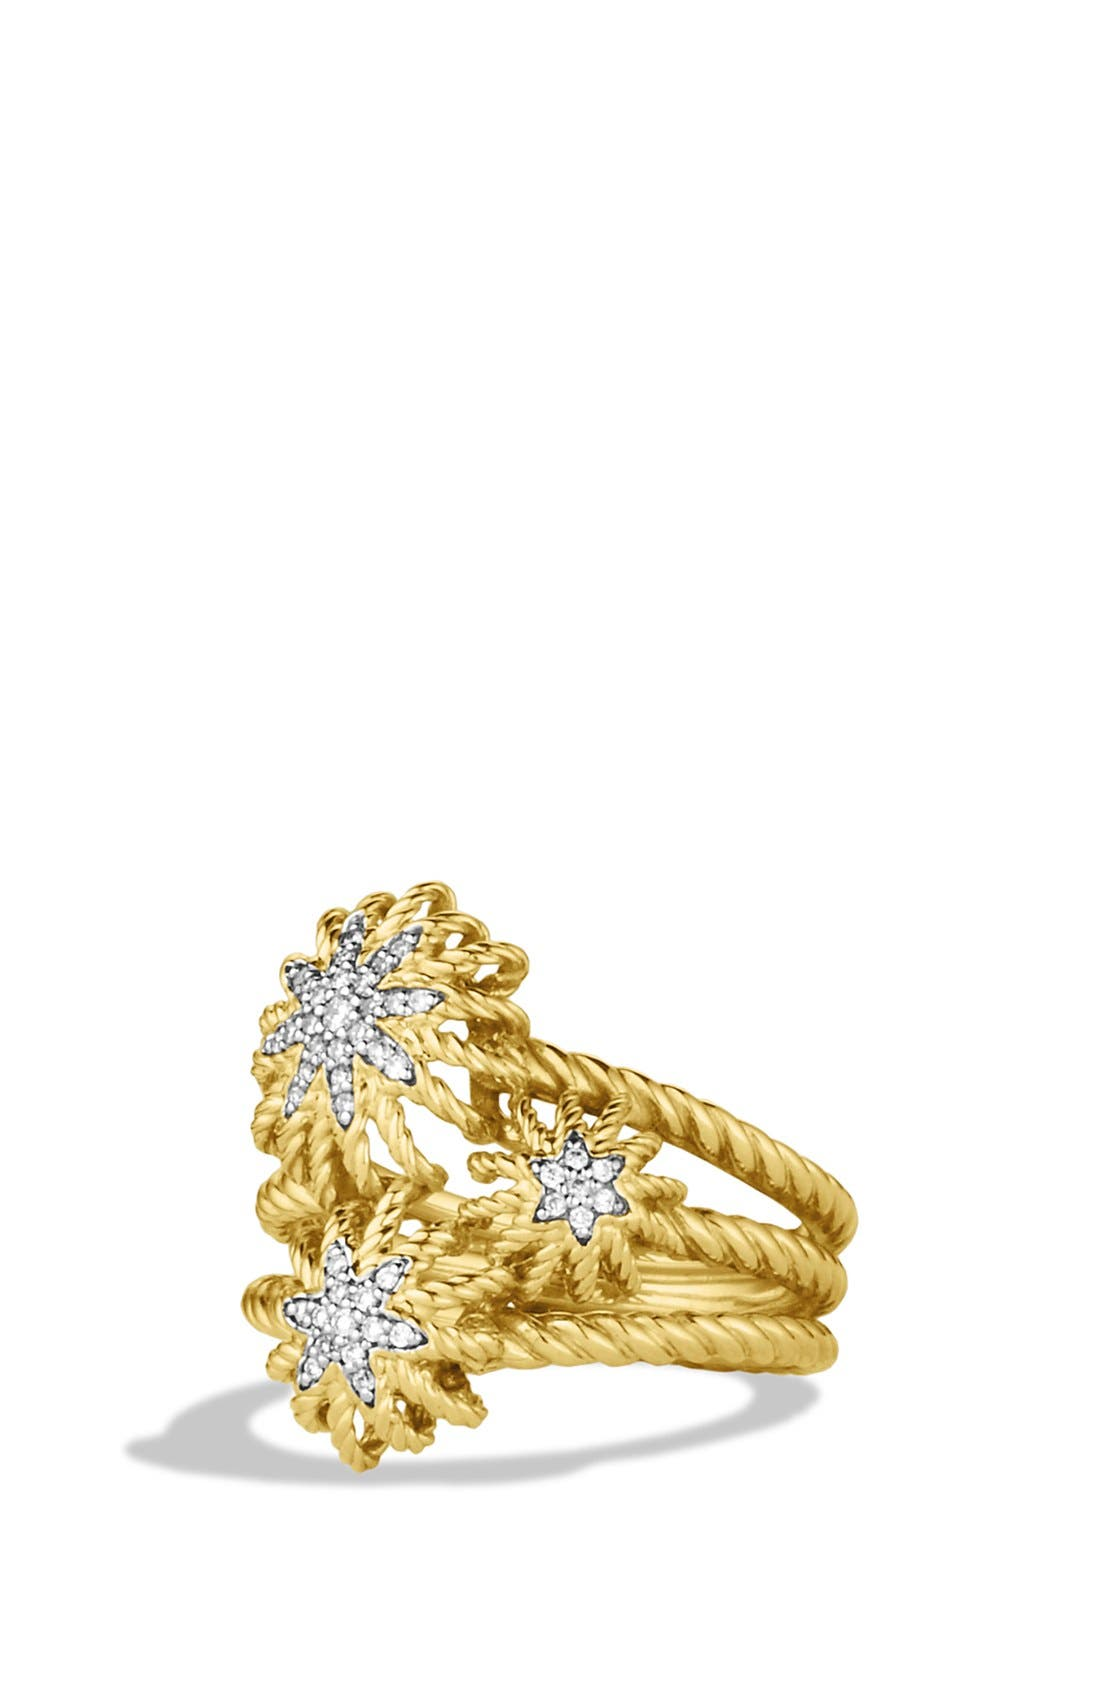 Alternate Image 1 Selected - David Yurman 'Starburst' Cluster Ring with Diamonds in Gold